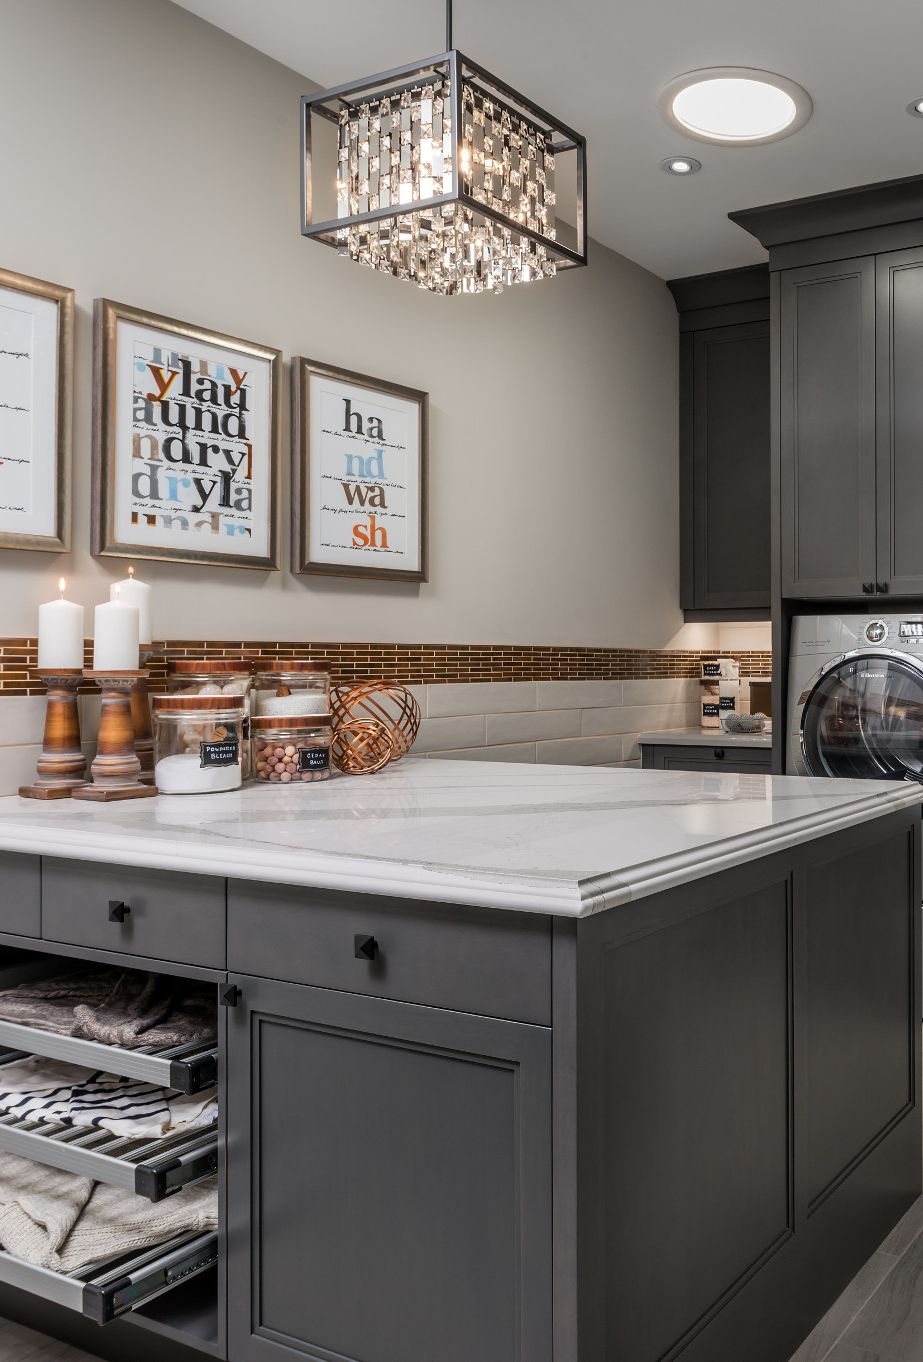 Cambria Brittanicca countertops in a neutral toned laundry room.